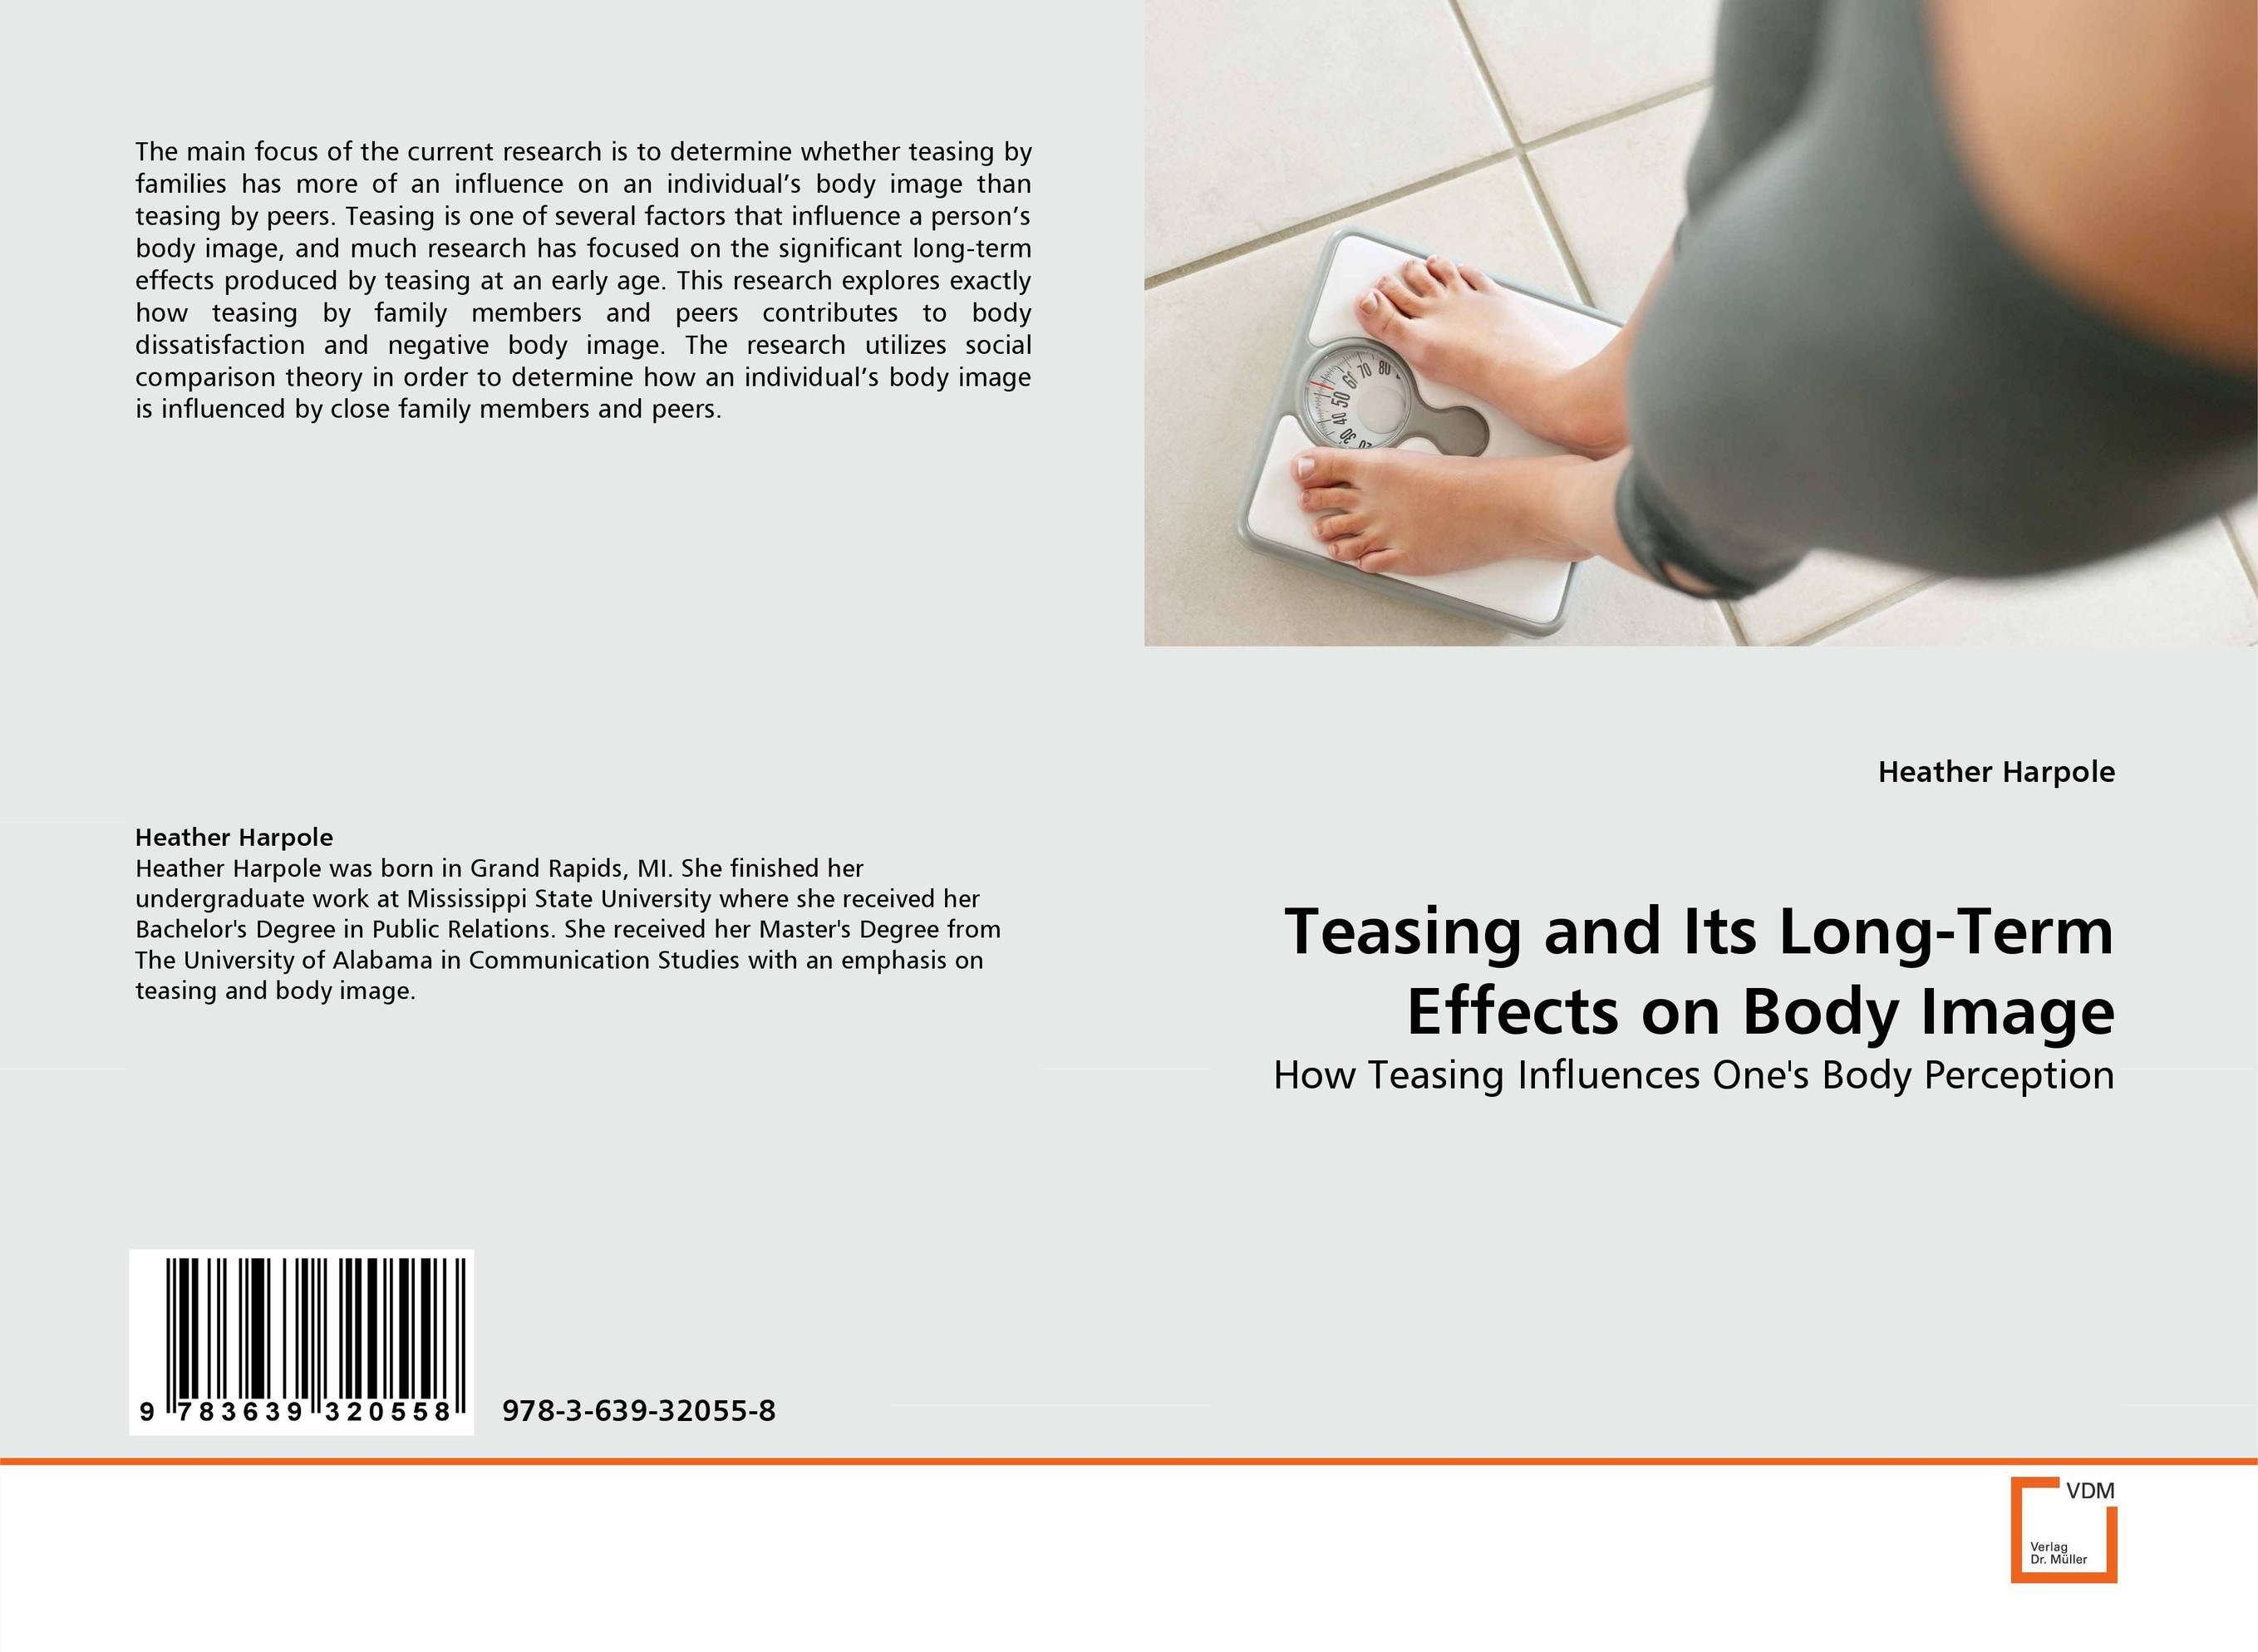 Teasing and Its Long-Term Effects on Body Image